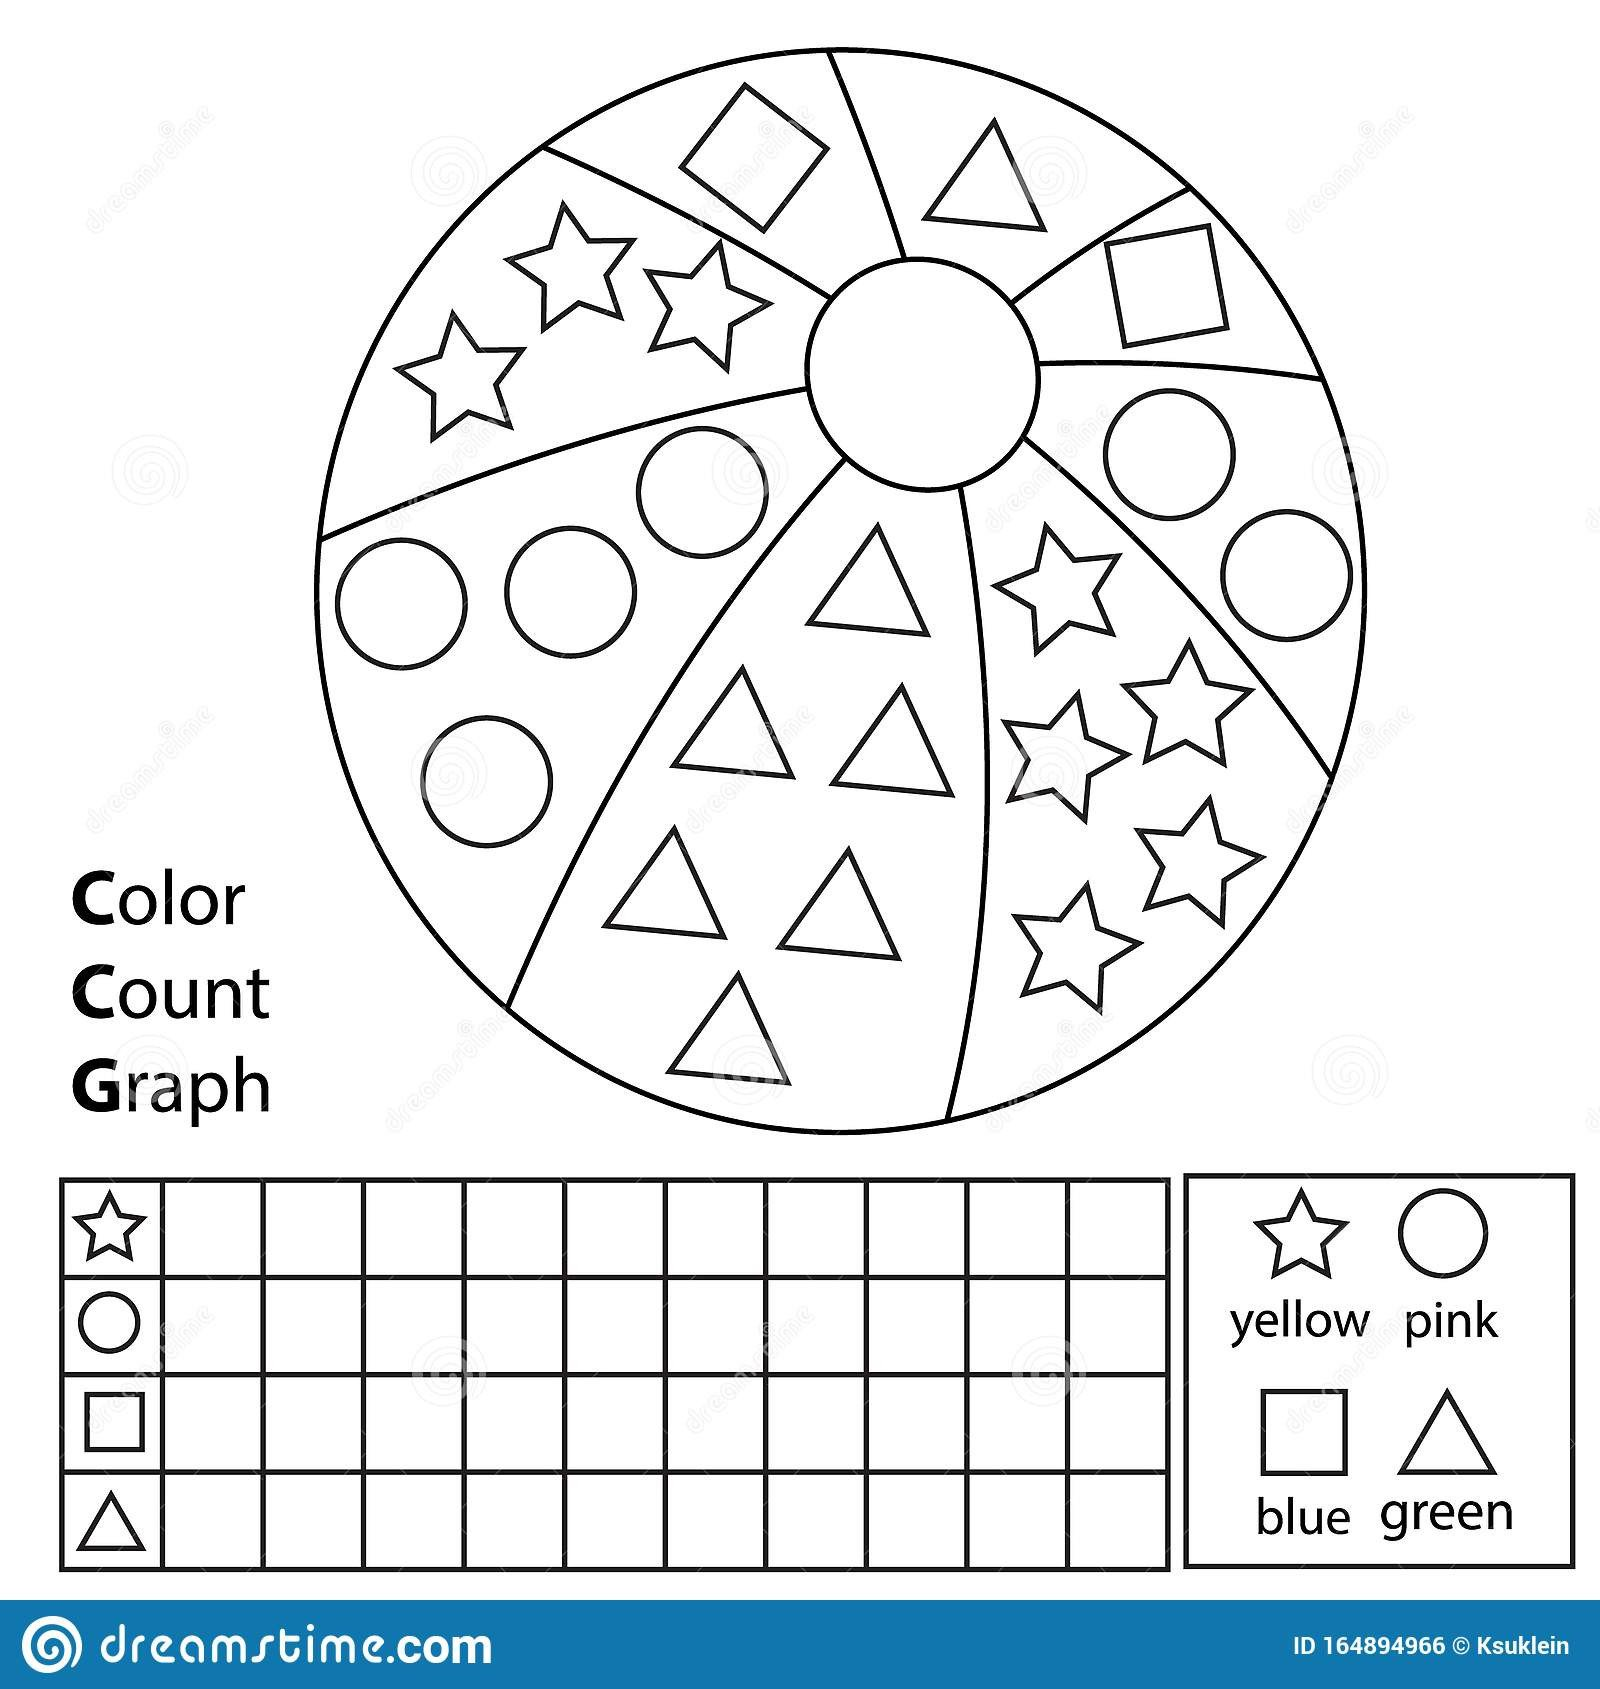 color worksheets for toddlers count graph educational children gamel counting shapes printable worksheet kids and